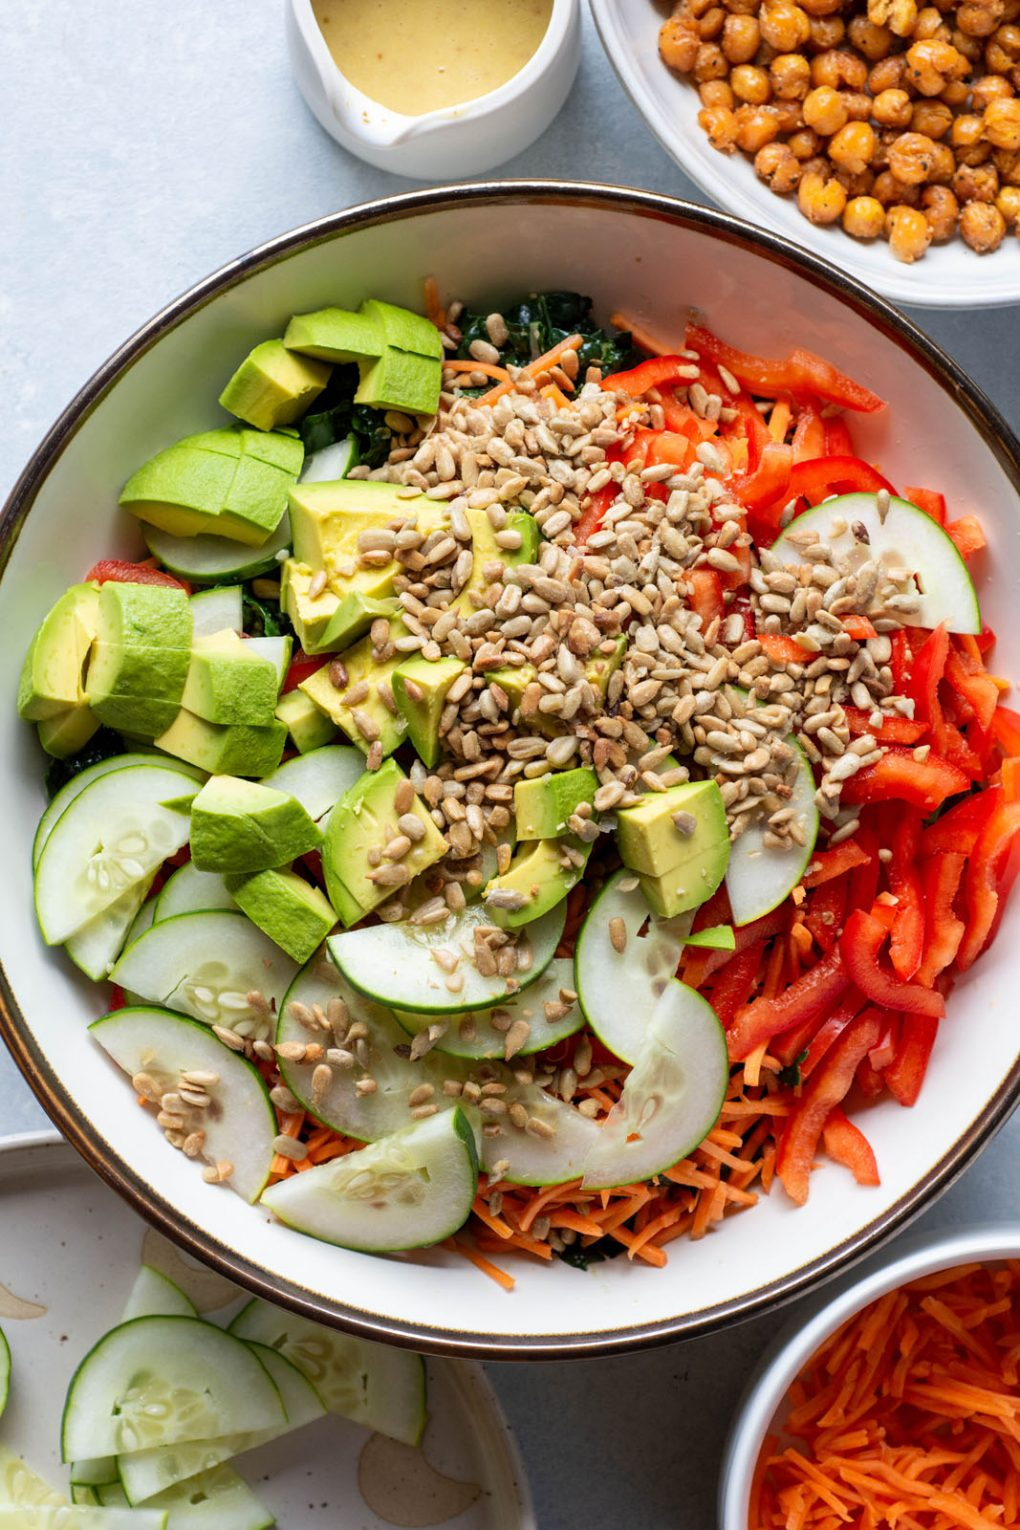 Overhead shot of a large white bowl filled with kale, shredded carrots, thinly sliced red pepper, thinly sliced cucumber, avocado, and sunflower seeds, on a light background